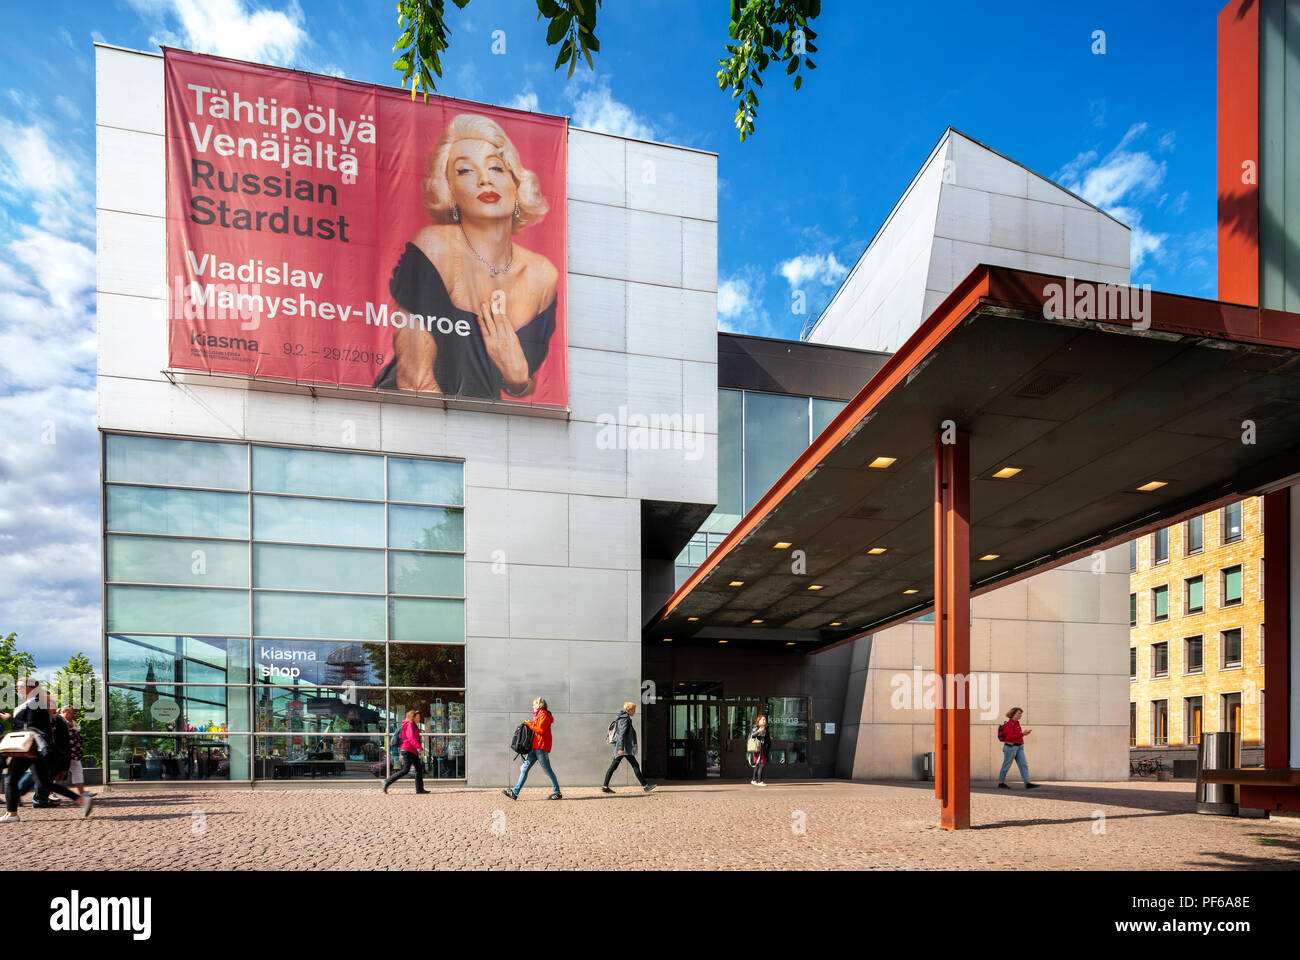 Helsinki Kiasma Museum of Contemporary Art. Exterior with main entrance and the Kiasma Museum Shop and Museum Cafe on the left. - Stock Image